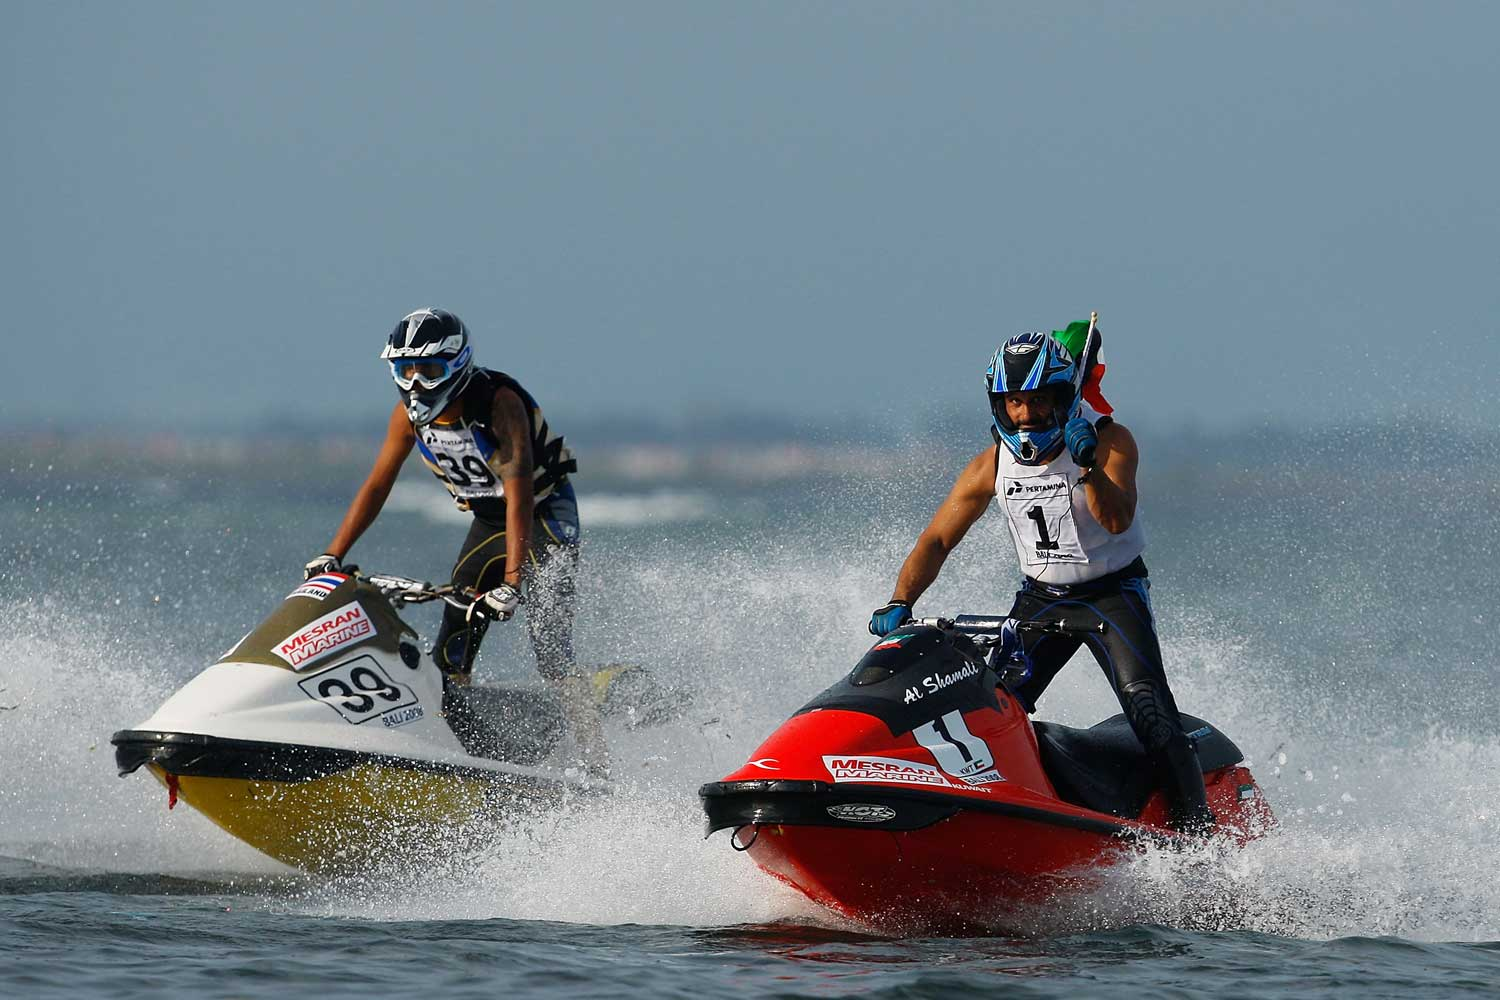 Jet skiers race to the finish in the Asian Beach Games at Nusa Dua in Bali, Indonesia.